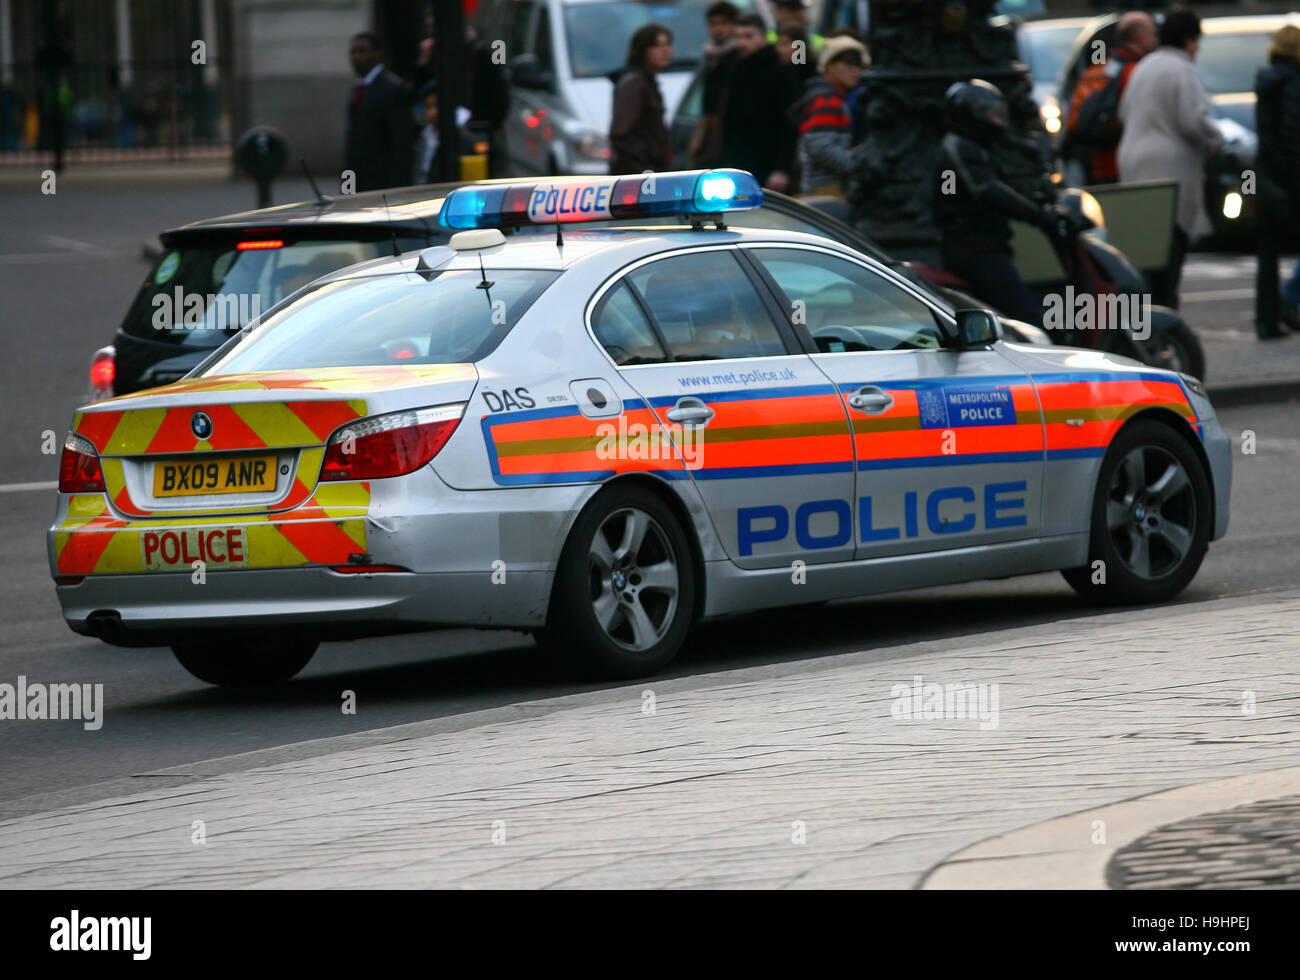 bmw police car stockfotos bmw police car bilder alamy. Black Bedroom Furniture Sets. Home Design Ideas